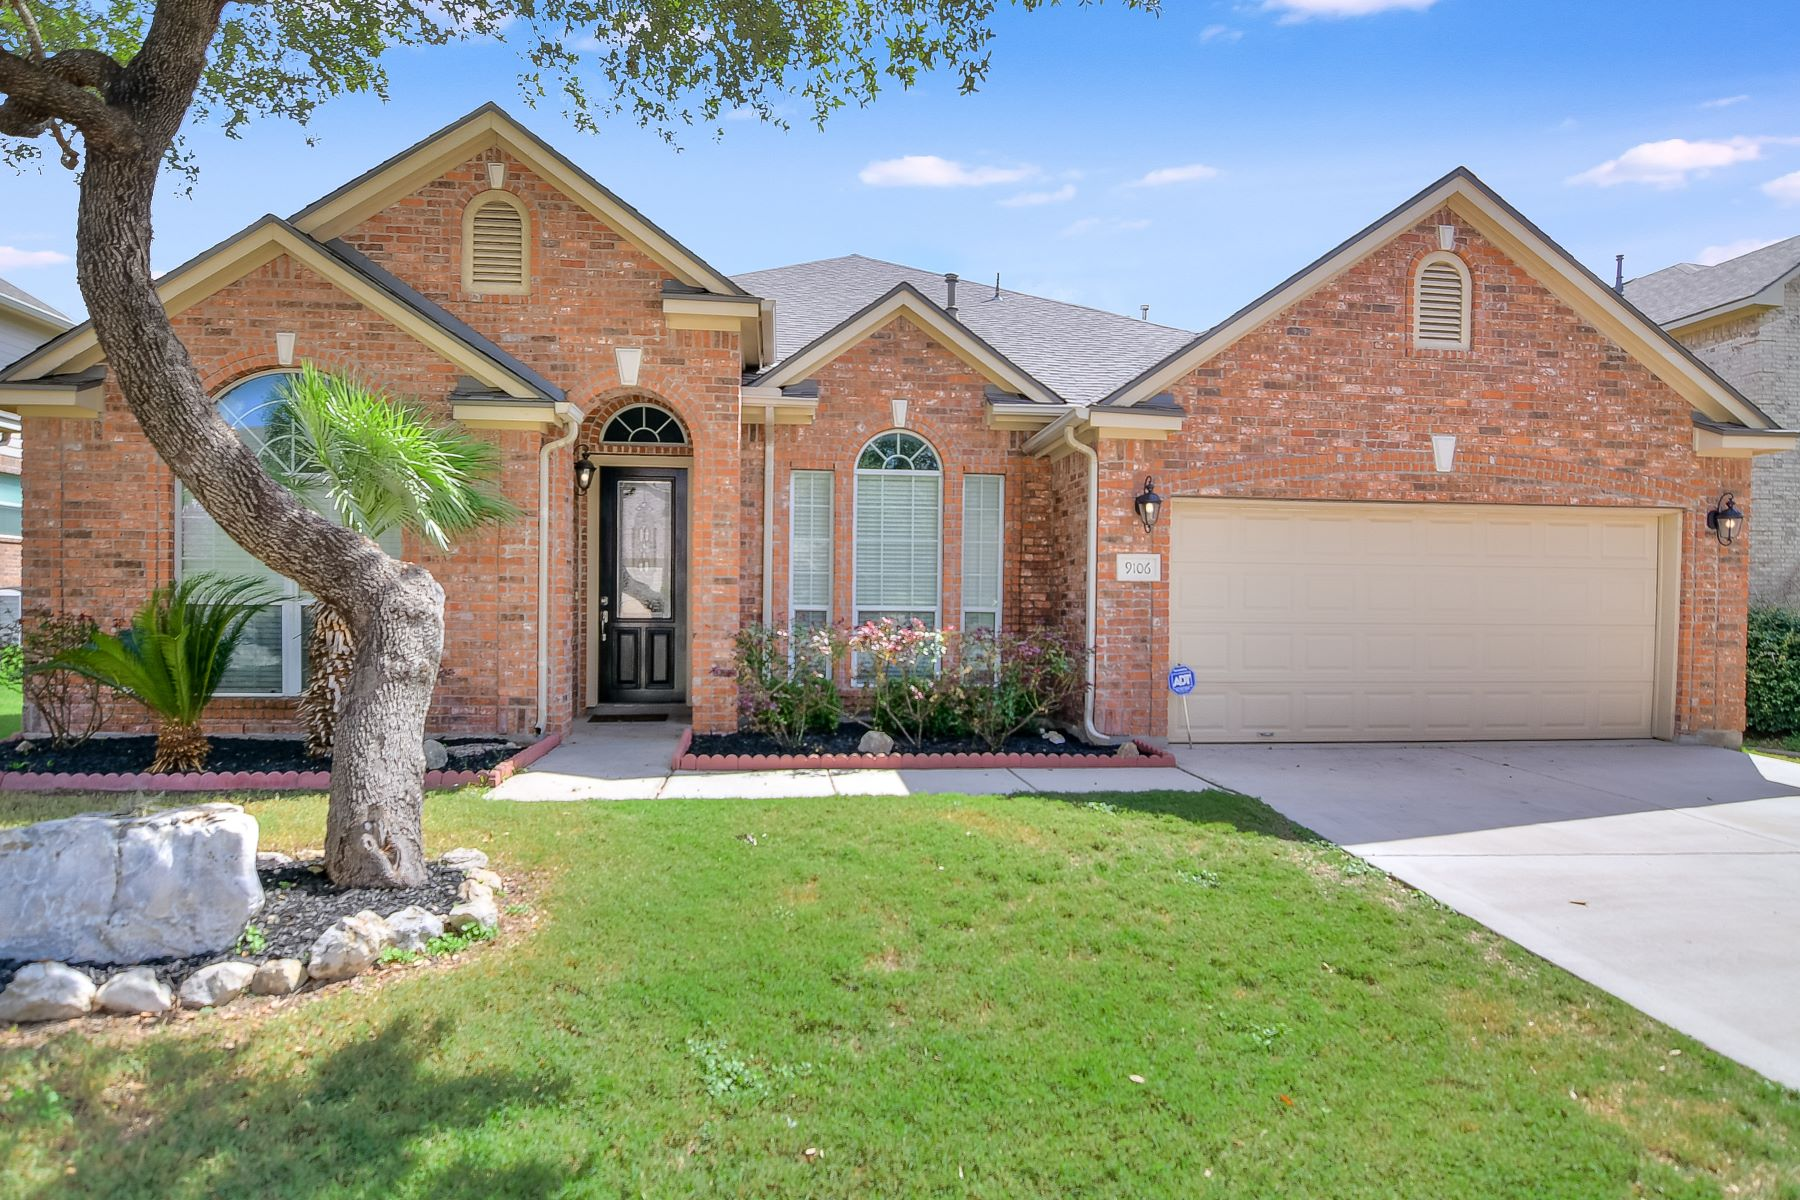 Single Family Homes for Sale at Charming Single Story Home in Prime Location 9106 Rio Sedona Dam Helotes, Texas 78023 United States